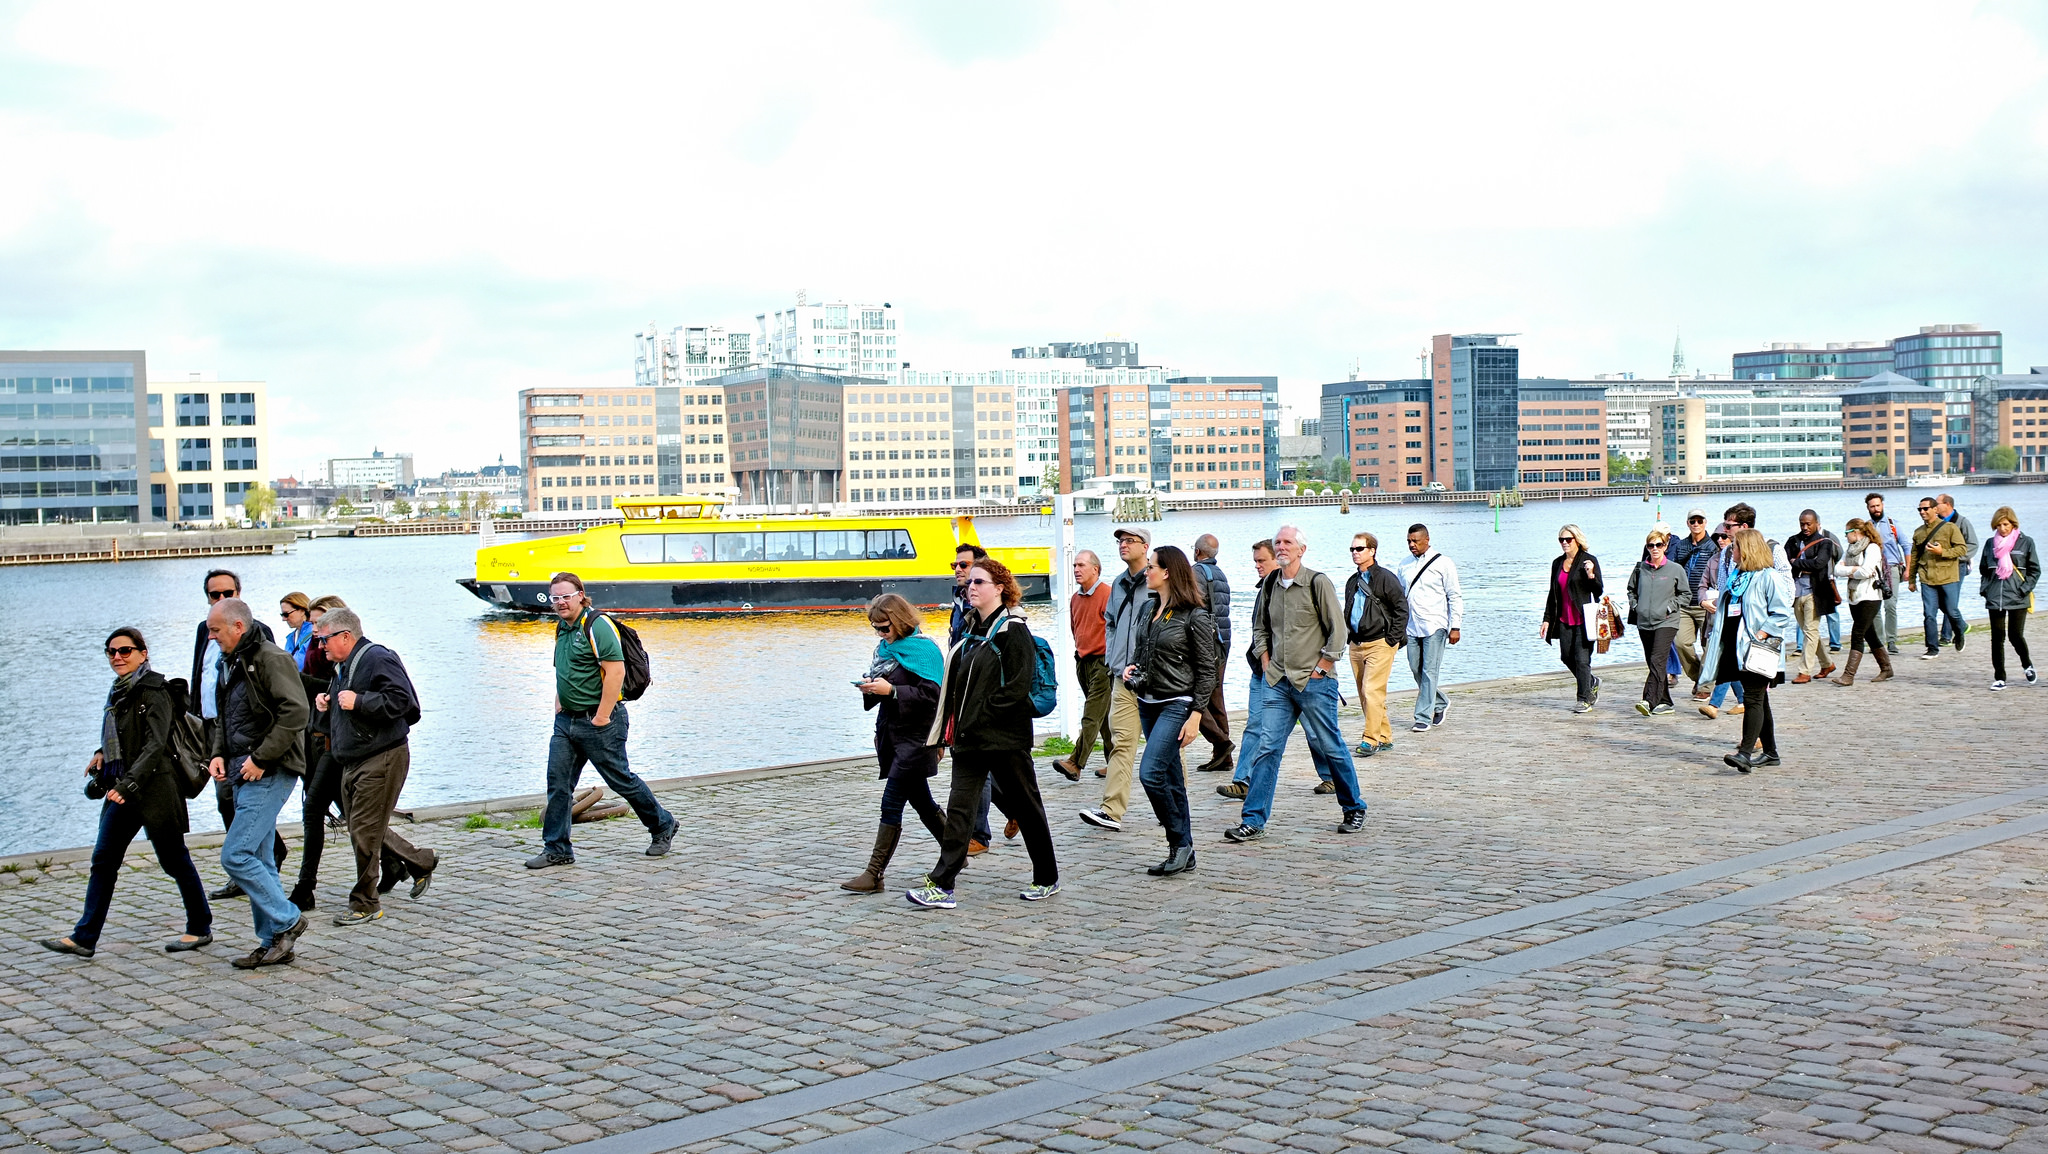 Five lessons for cities from Copenhagen